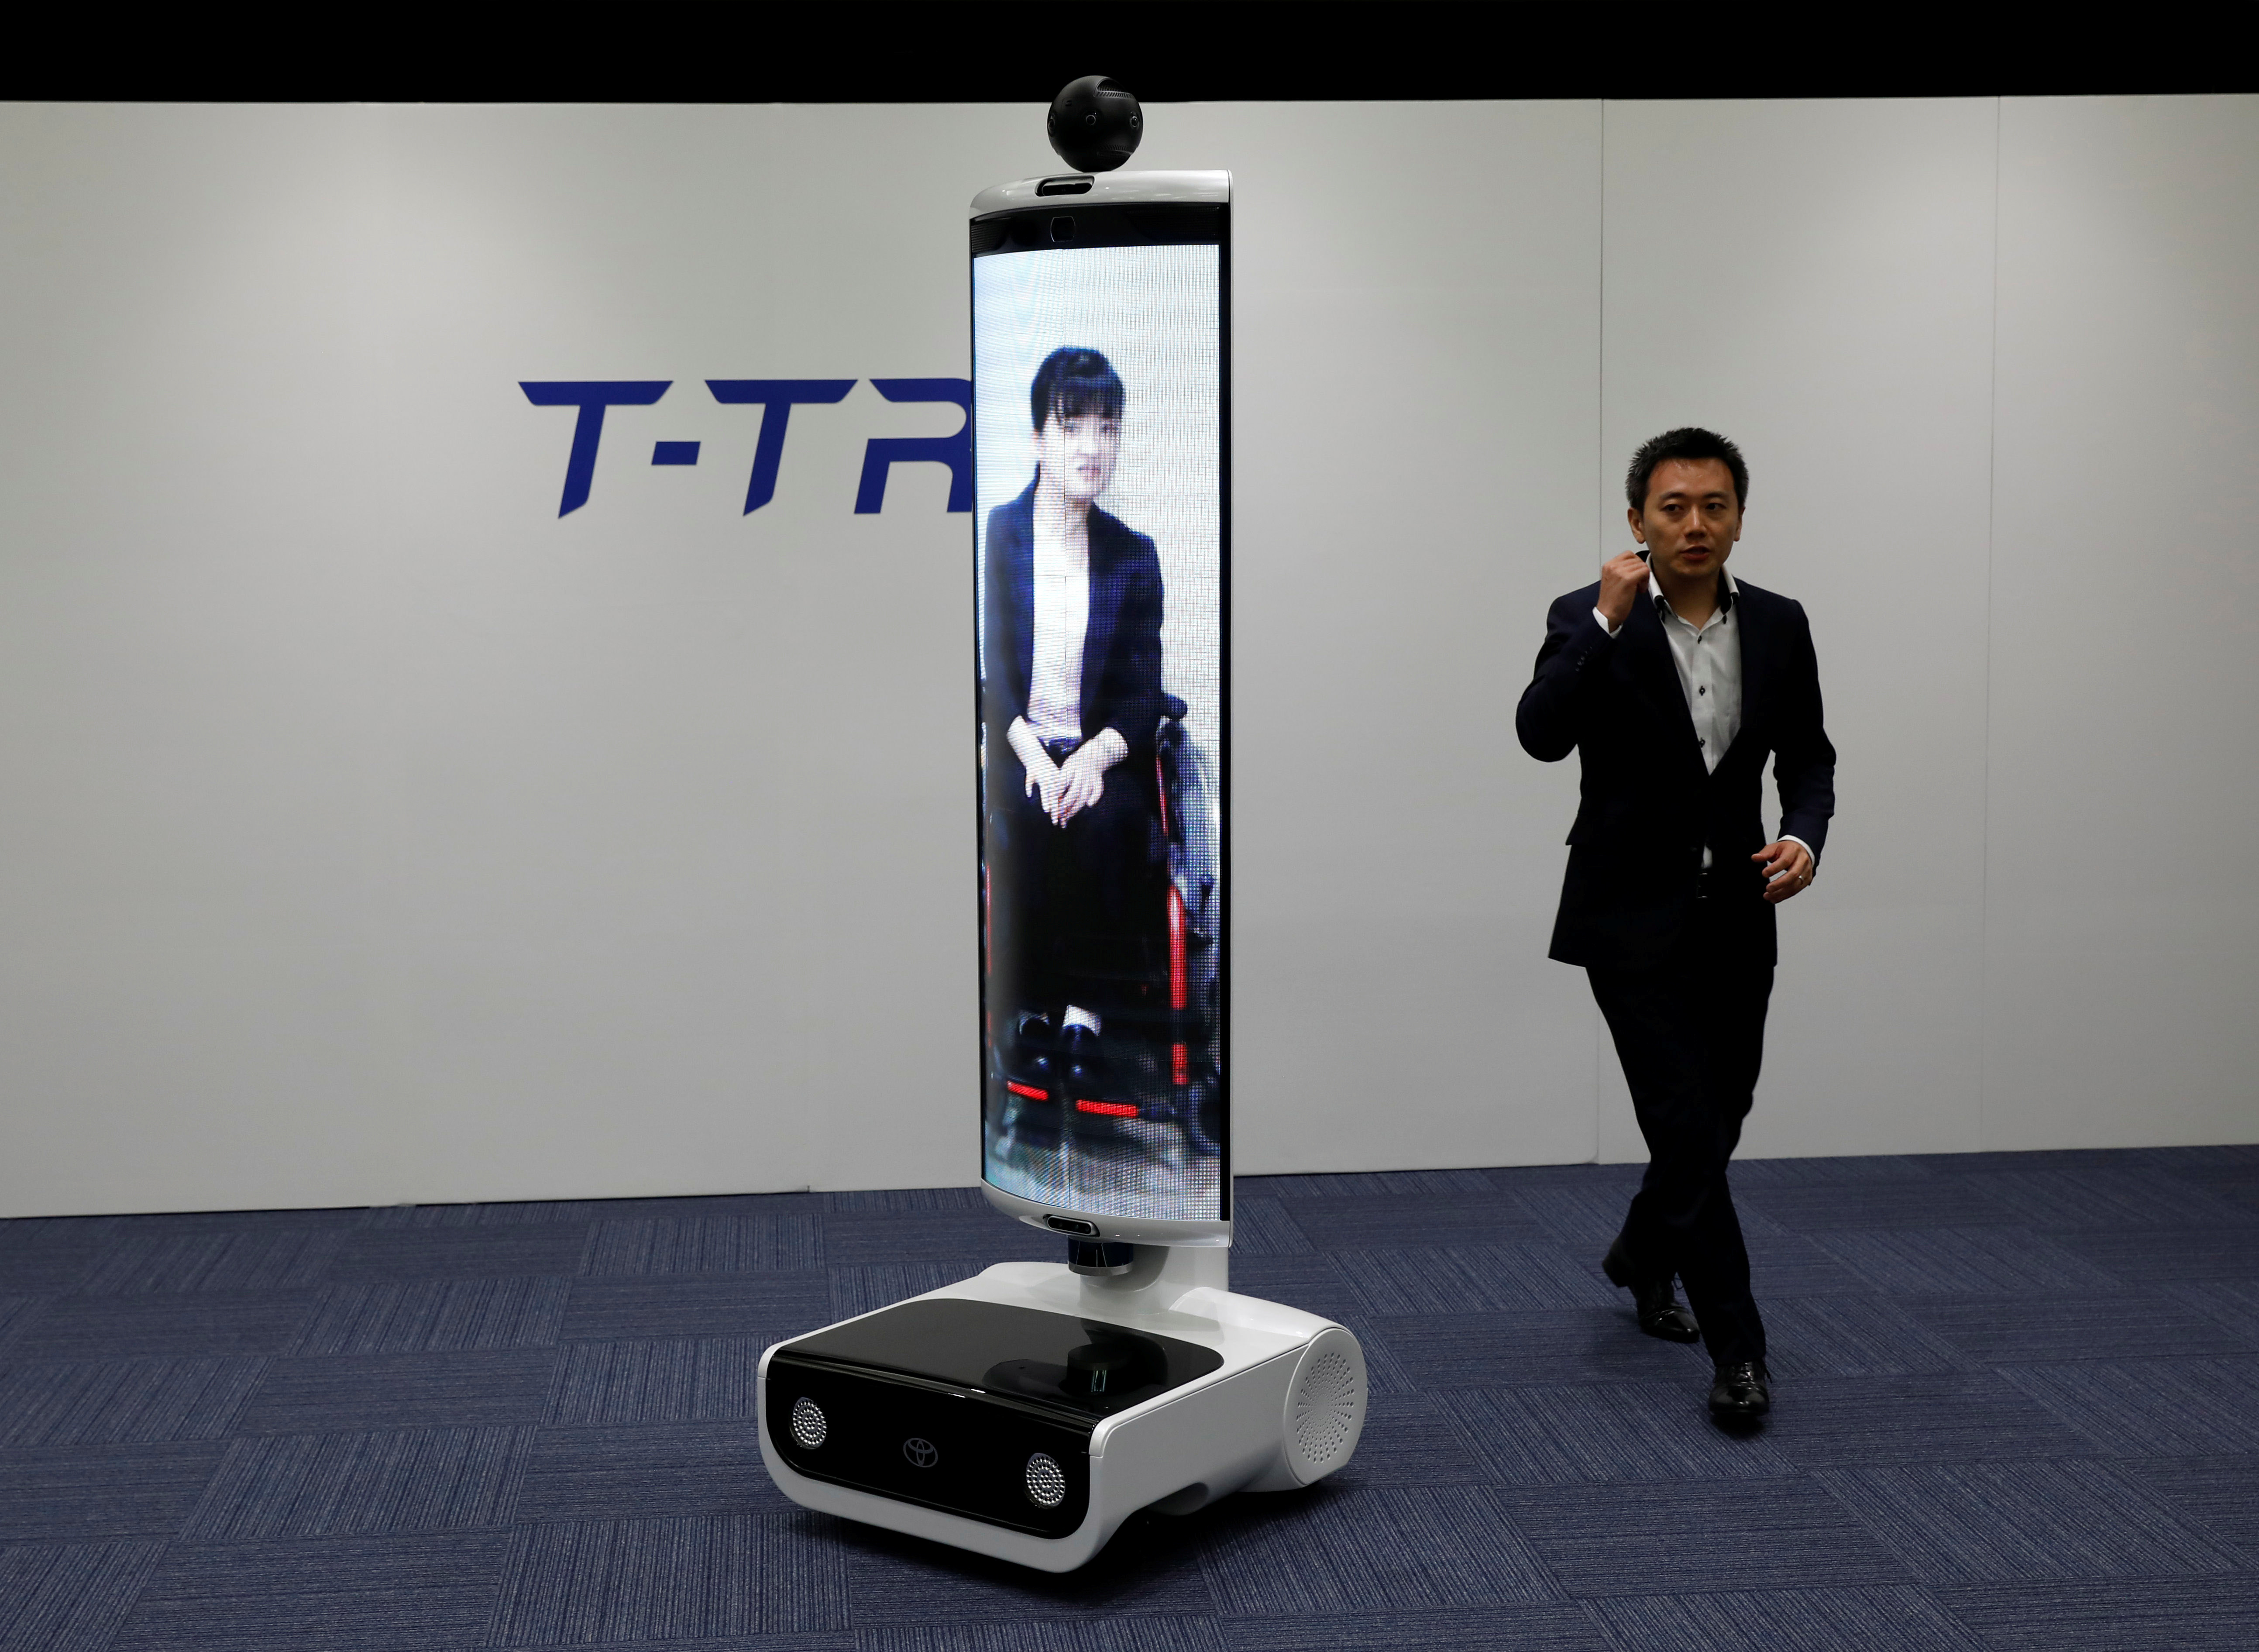 An employee of Toyota Motor Corp. demonstrates T-TR1 remote location communication robot which will be used to support the Tokyo 2020 Olympic and Paralympic Games, during a press preview in Tokyo, Japan July 18, 2019. Picture taken July 18, 2019.  REUTERS/Issei Kato - RC1B0E595880